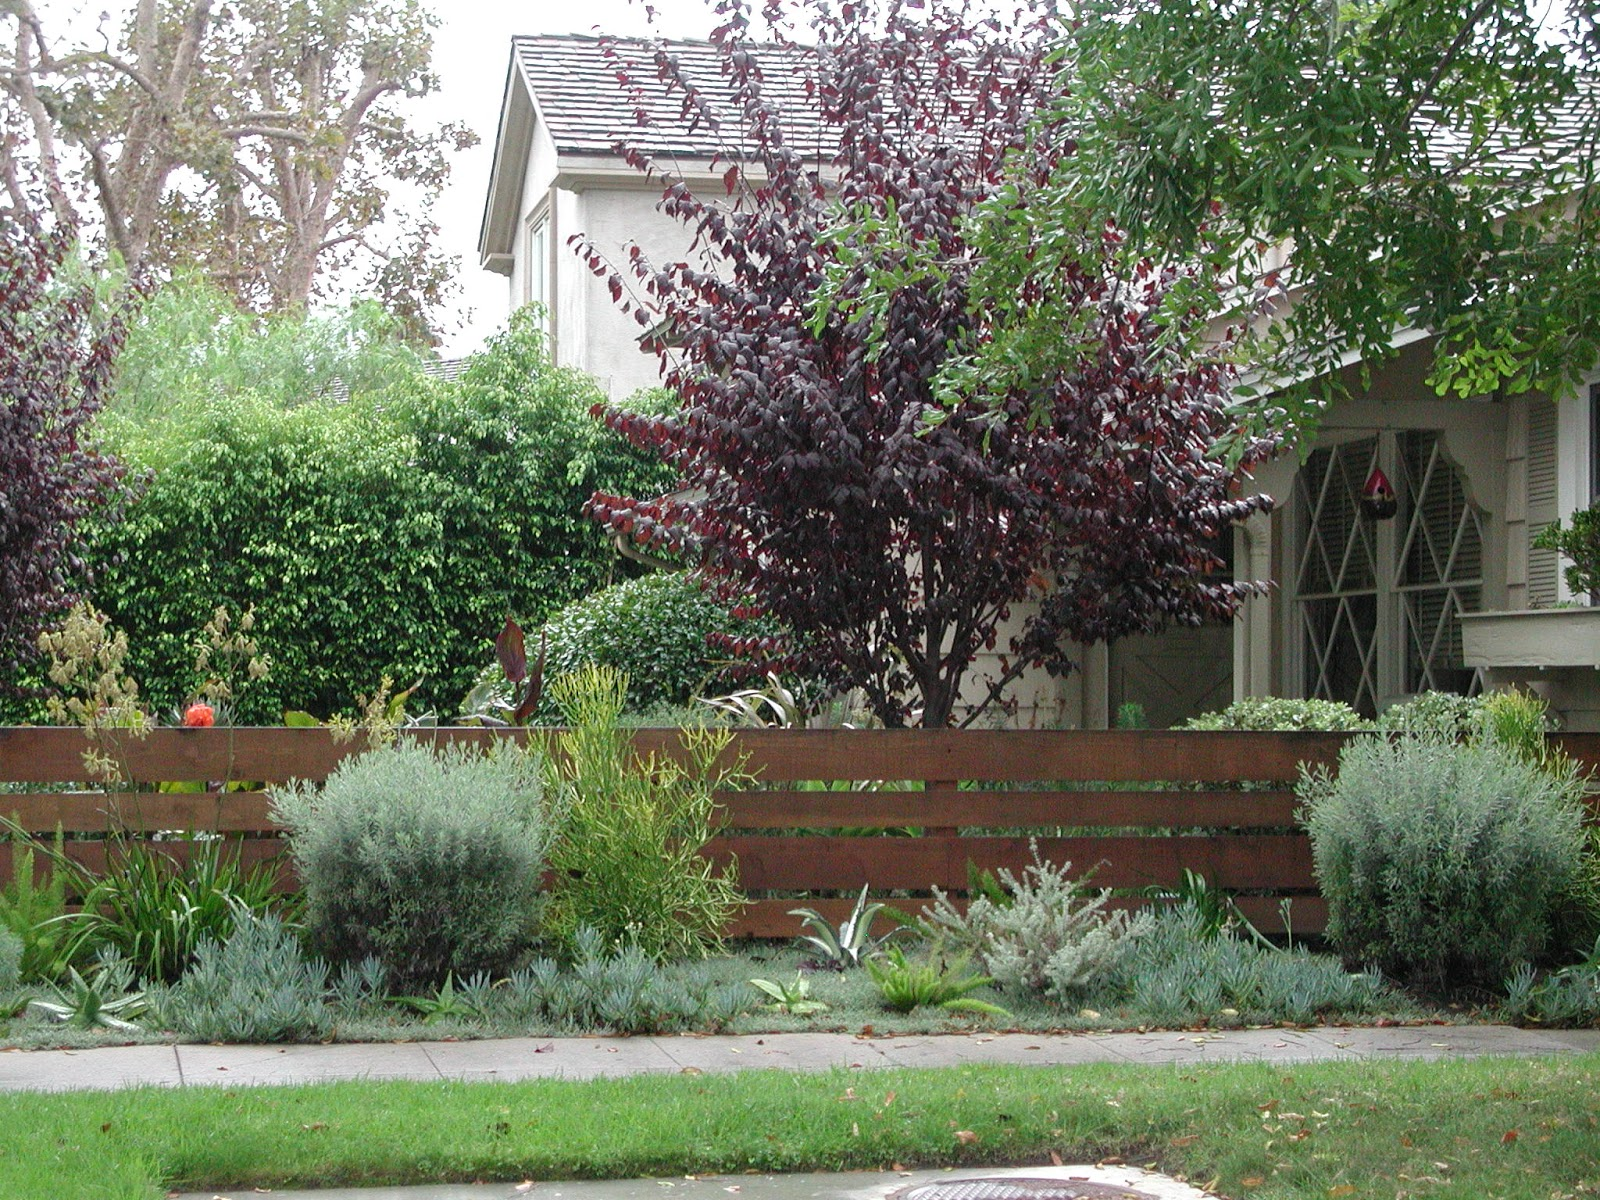 Fence on pinterest front yard fence front yards and for Small front yard ideas with fence